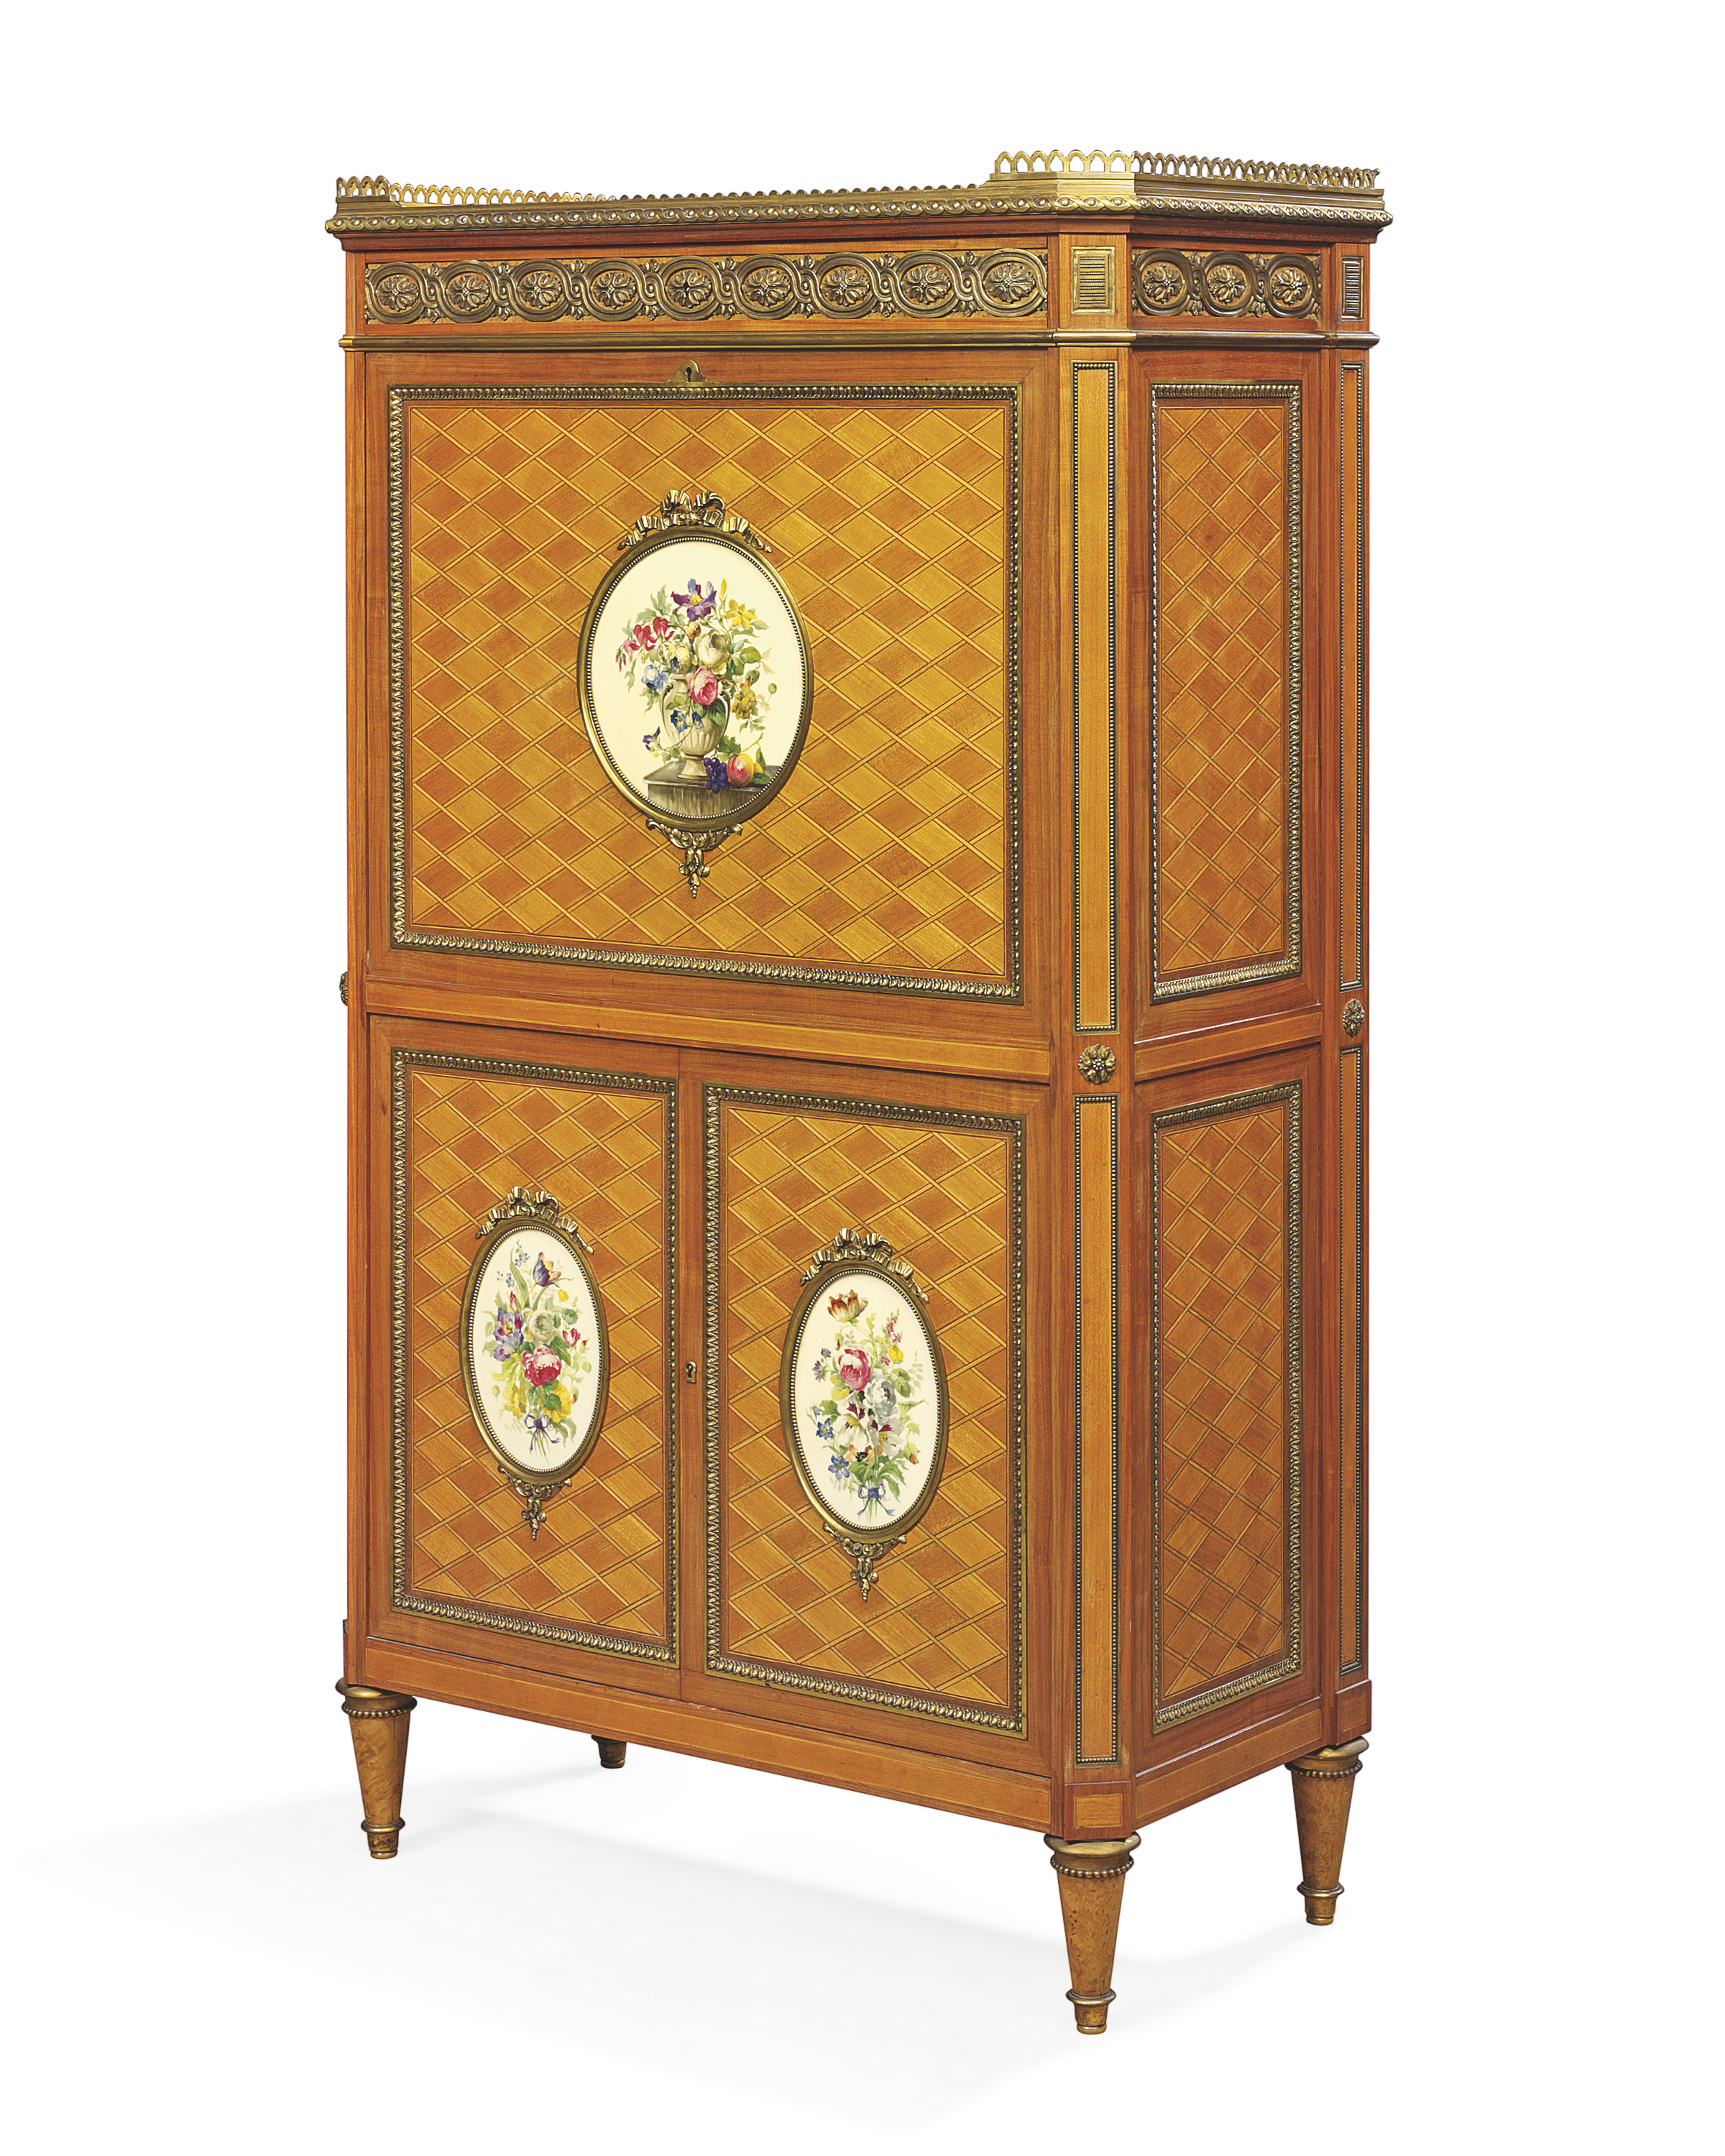 A FINE FRENCH ORMOLU AND SEVRES PORCELAIN-MOUNTED MAHOGANY AND SATINWOOD SECRETAIRE A ABBATANT